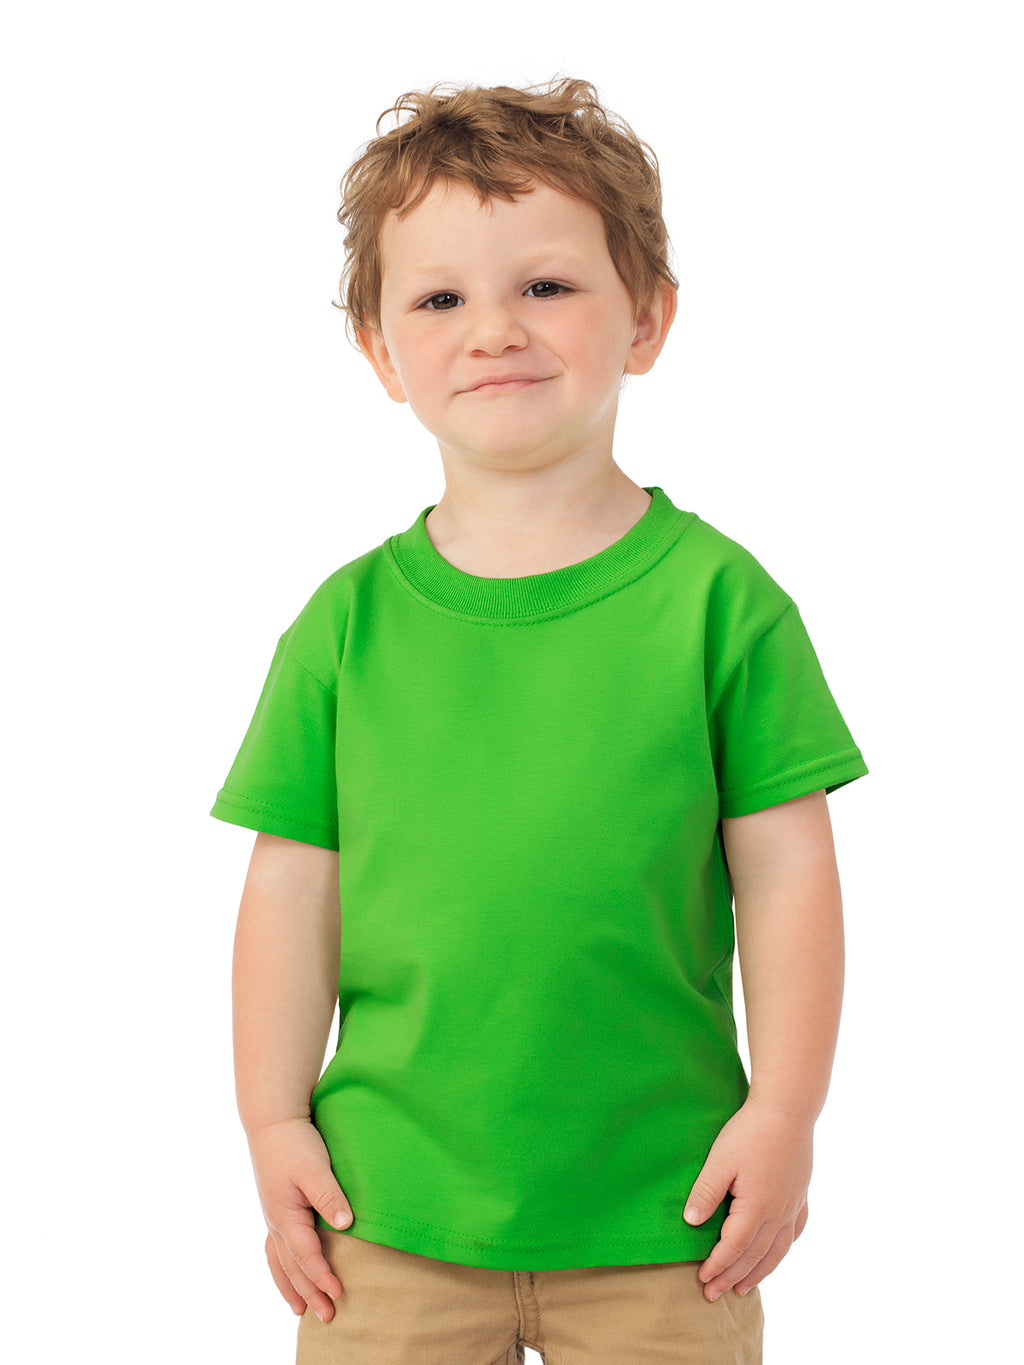 Fruit Of The Loom Toddlers HD Cotton Short Sleeve Crew T-Shirt